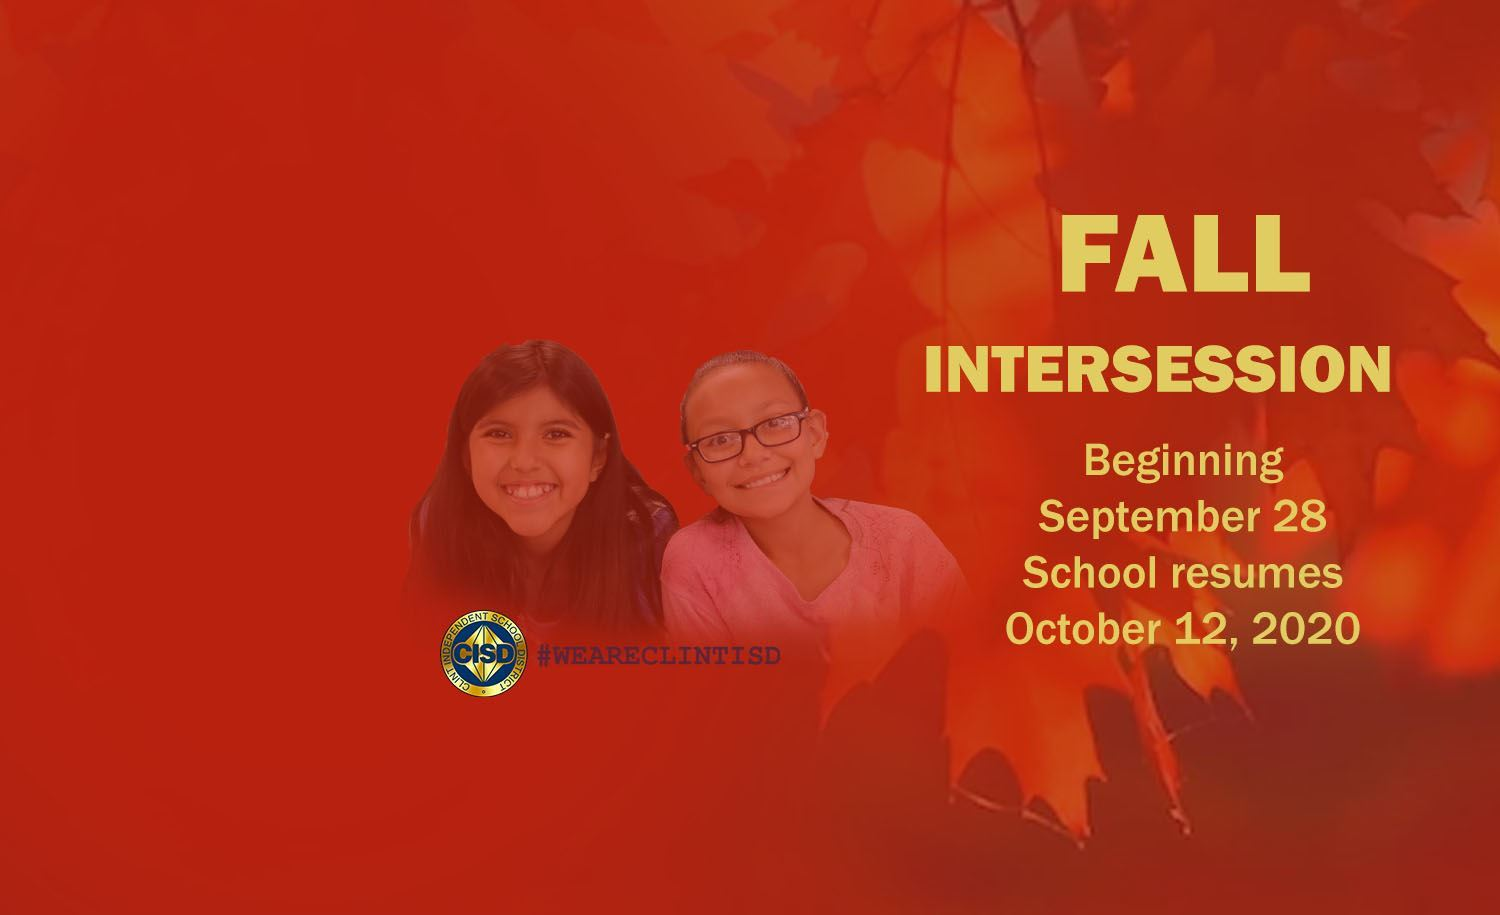 Fall Intersession